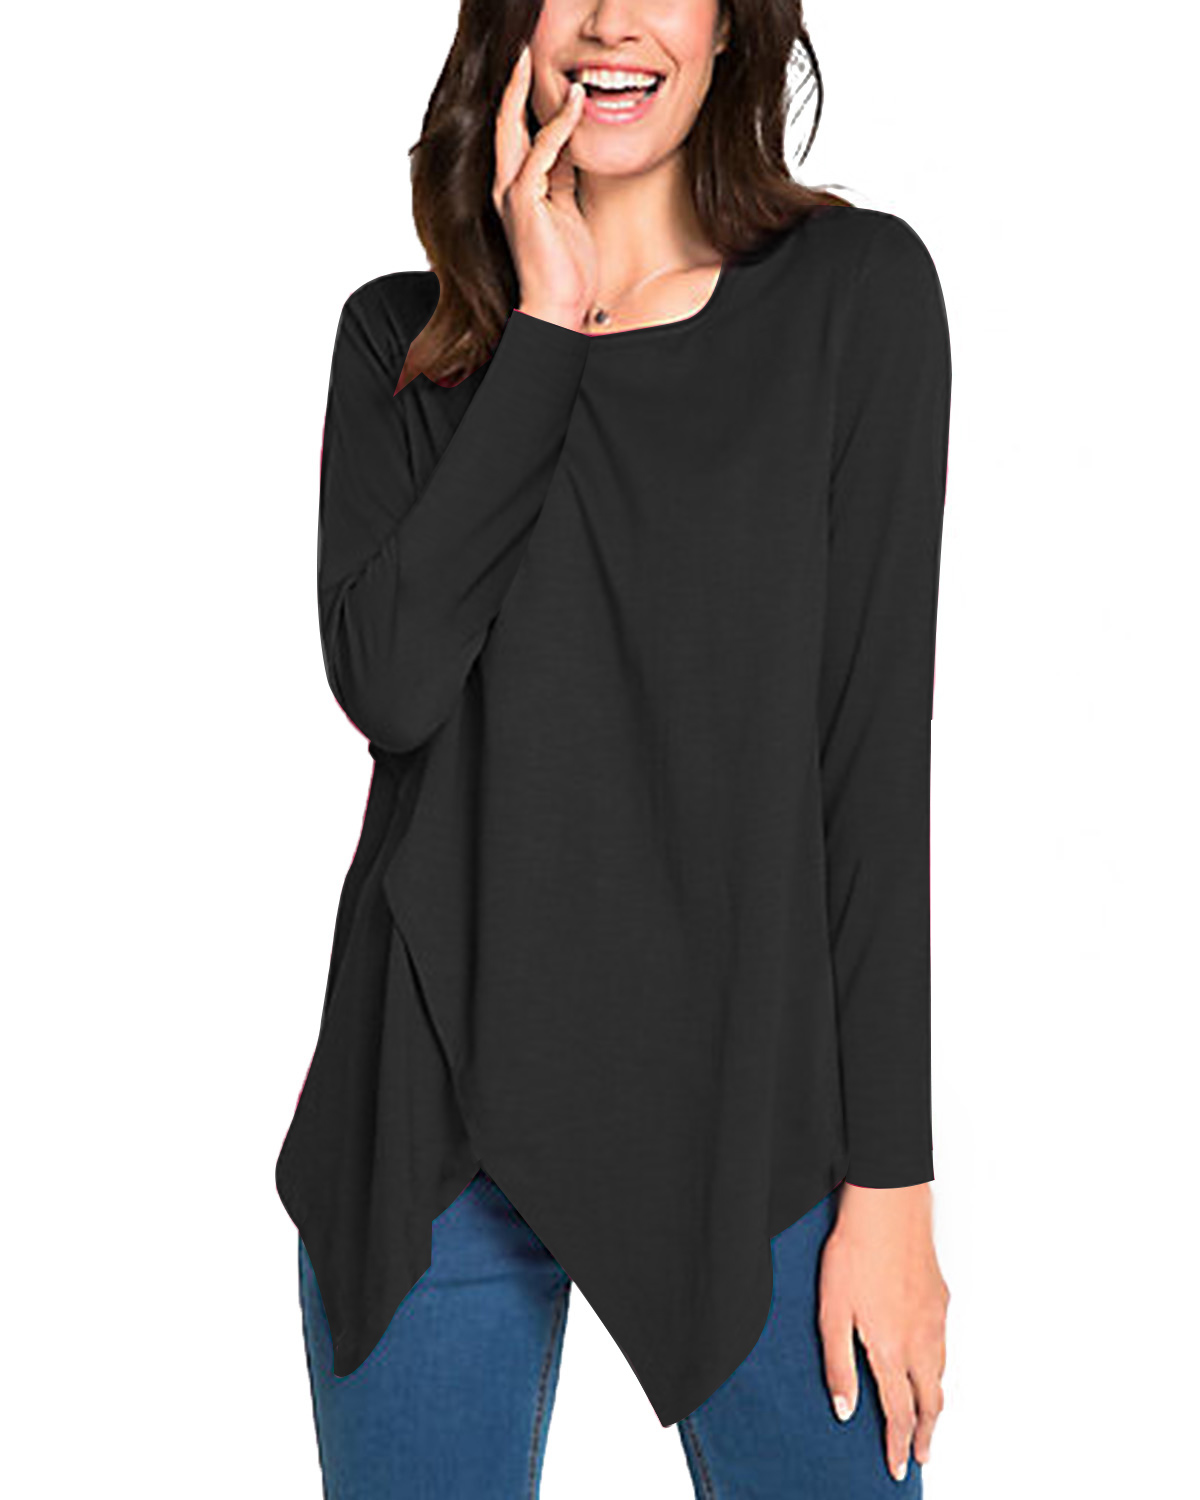 2019 Spring Autumn Women Pullover T-Shirts ZANZEA Casual Loose Round Neck Long Sleeve Solid Color Irregular Tops Tees Plus Size